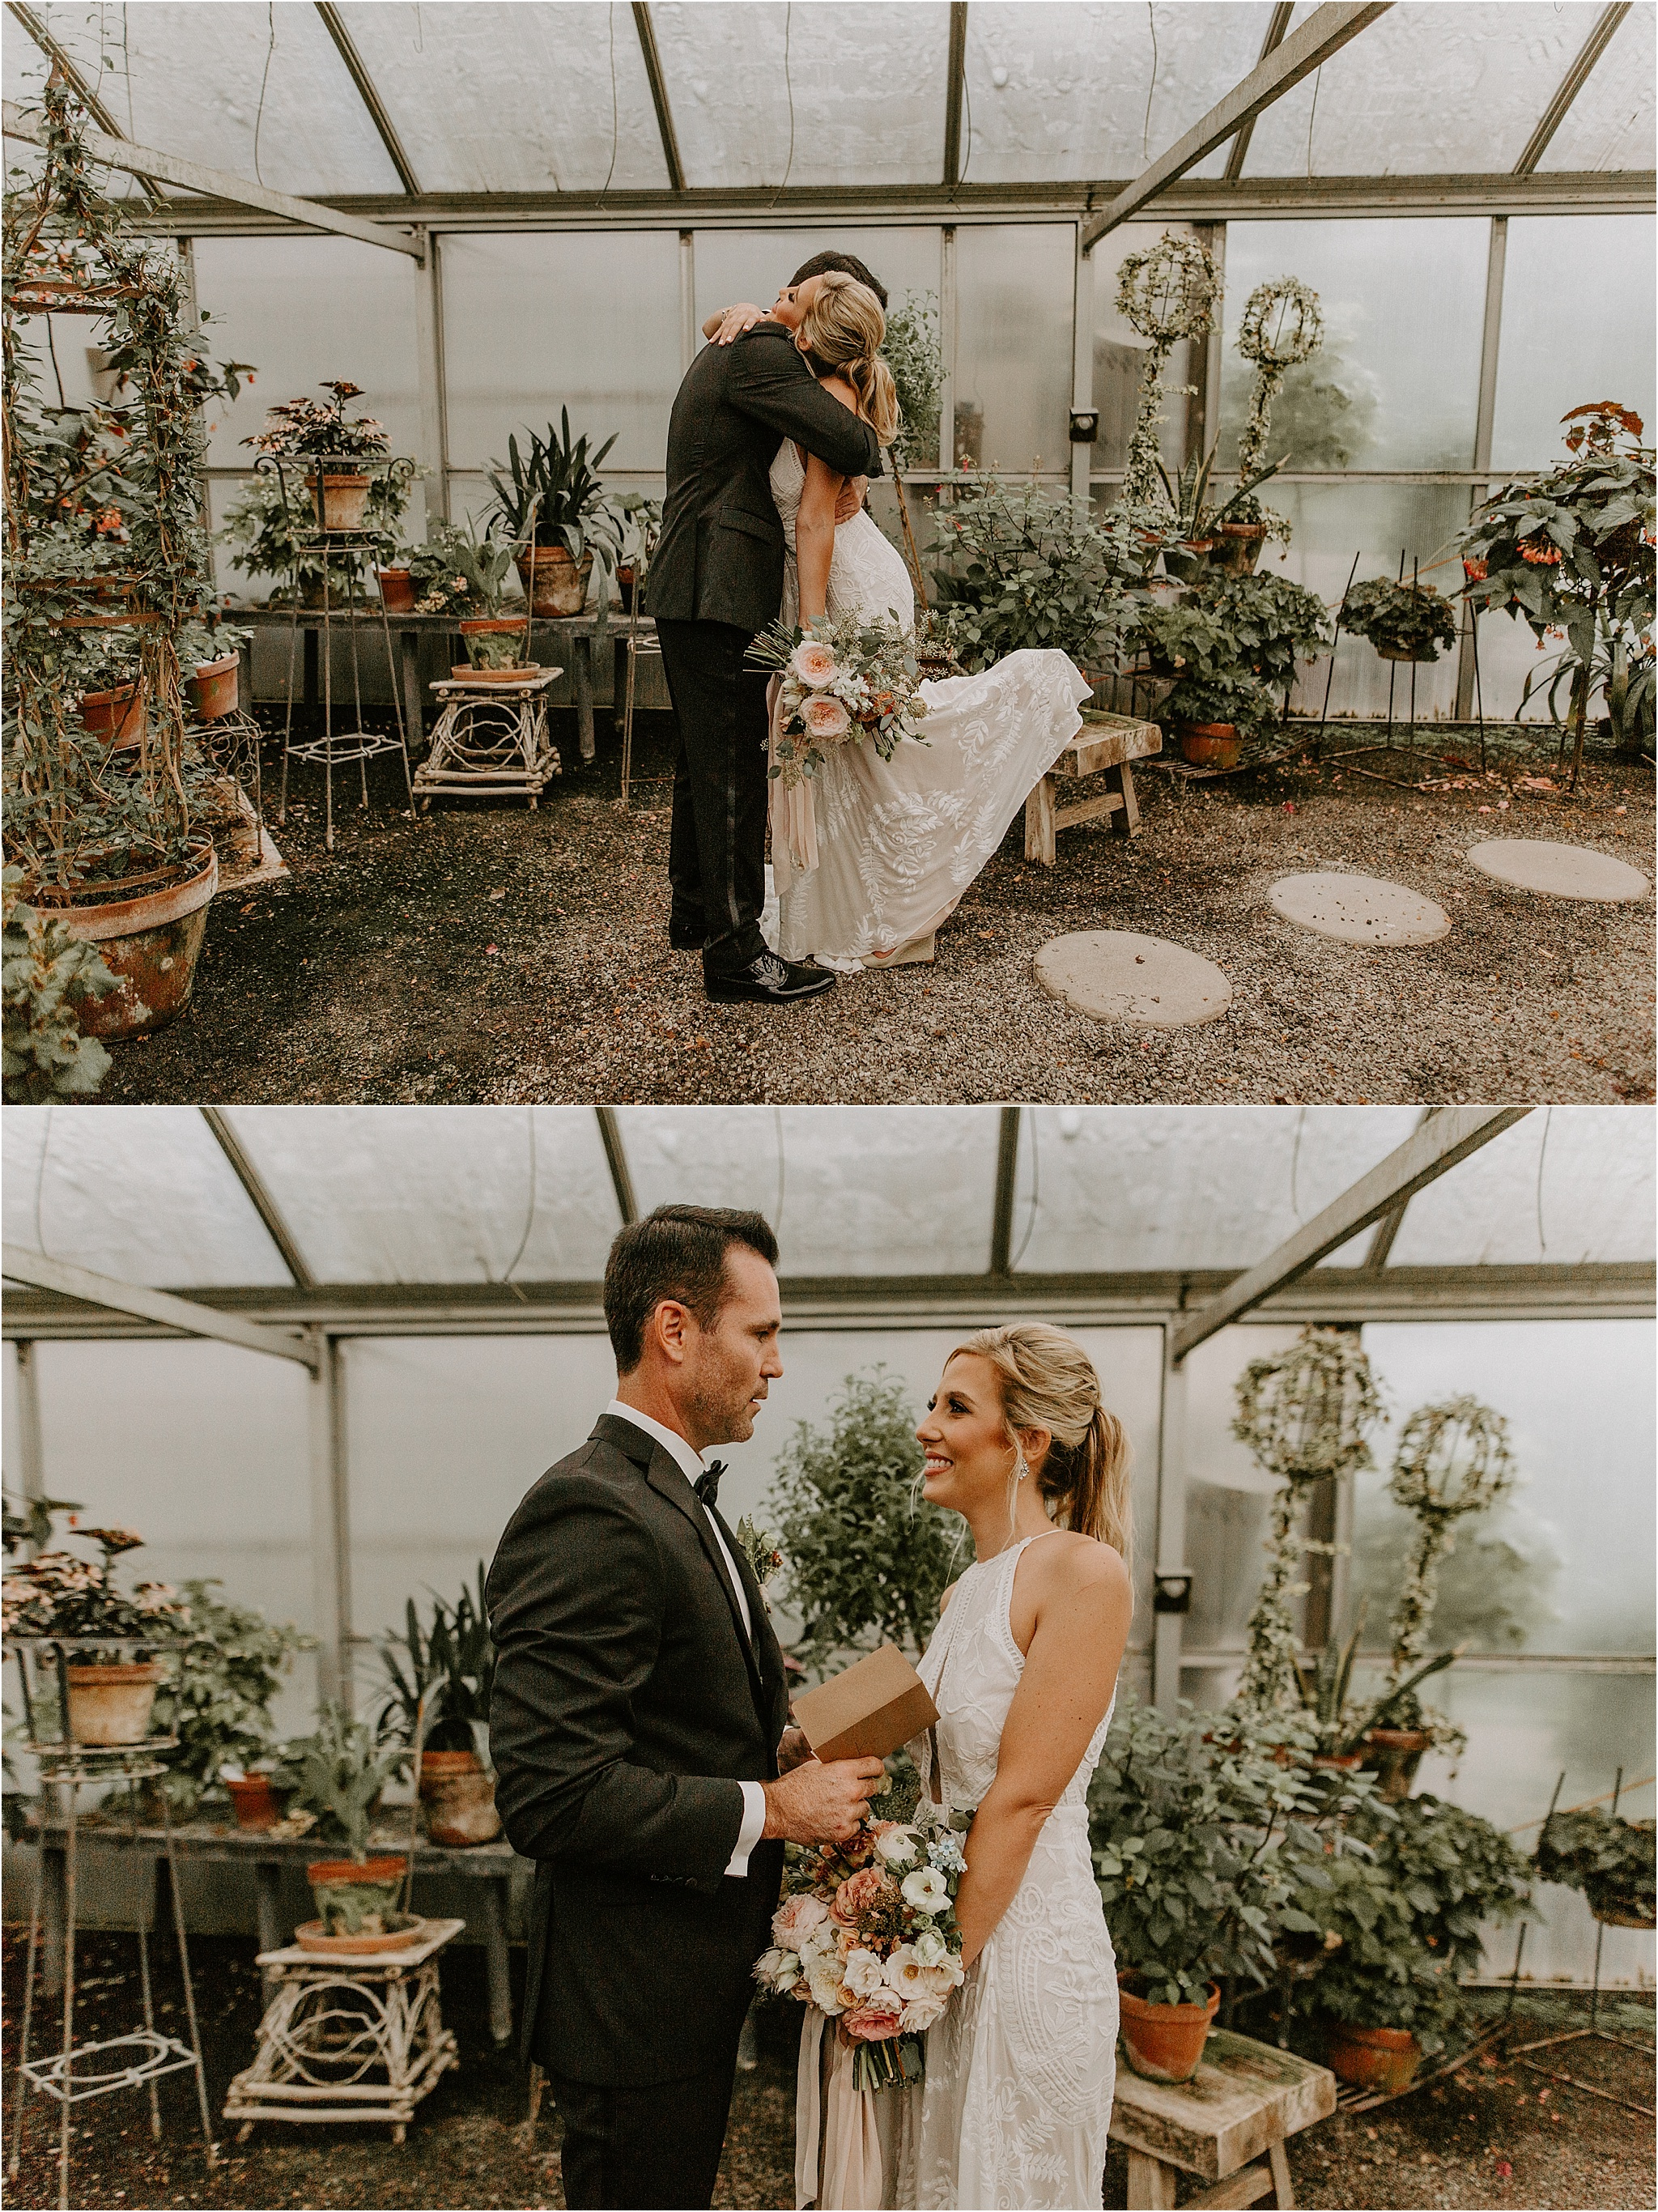 Sarah_Brookhart_Hortulus_Farm_Garden_and_Nursey_Wedding_Photographer_0023.jpg